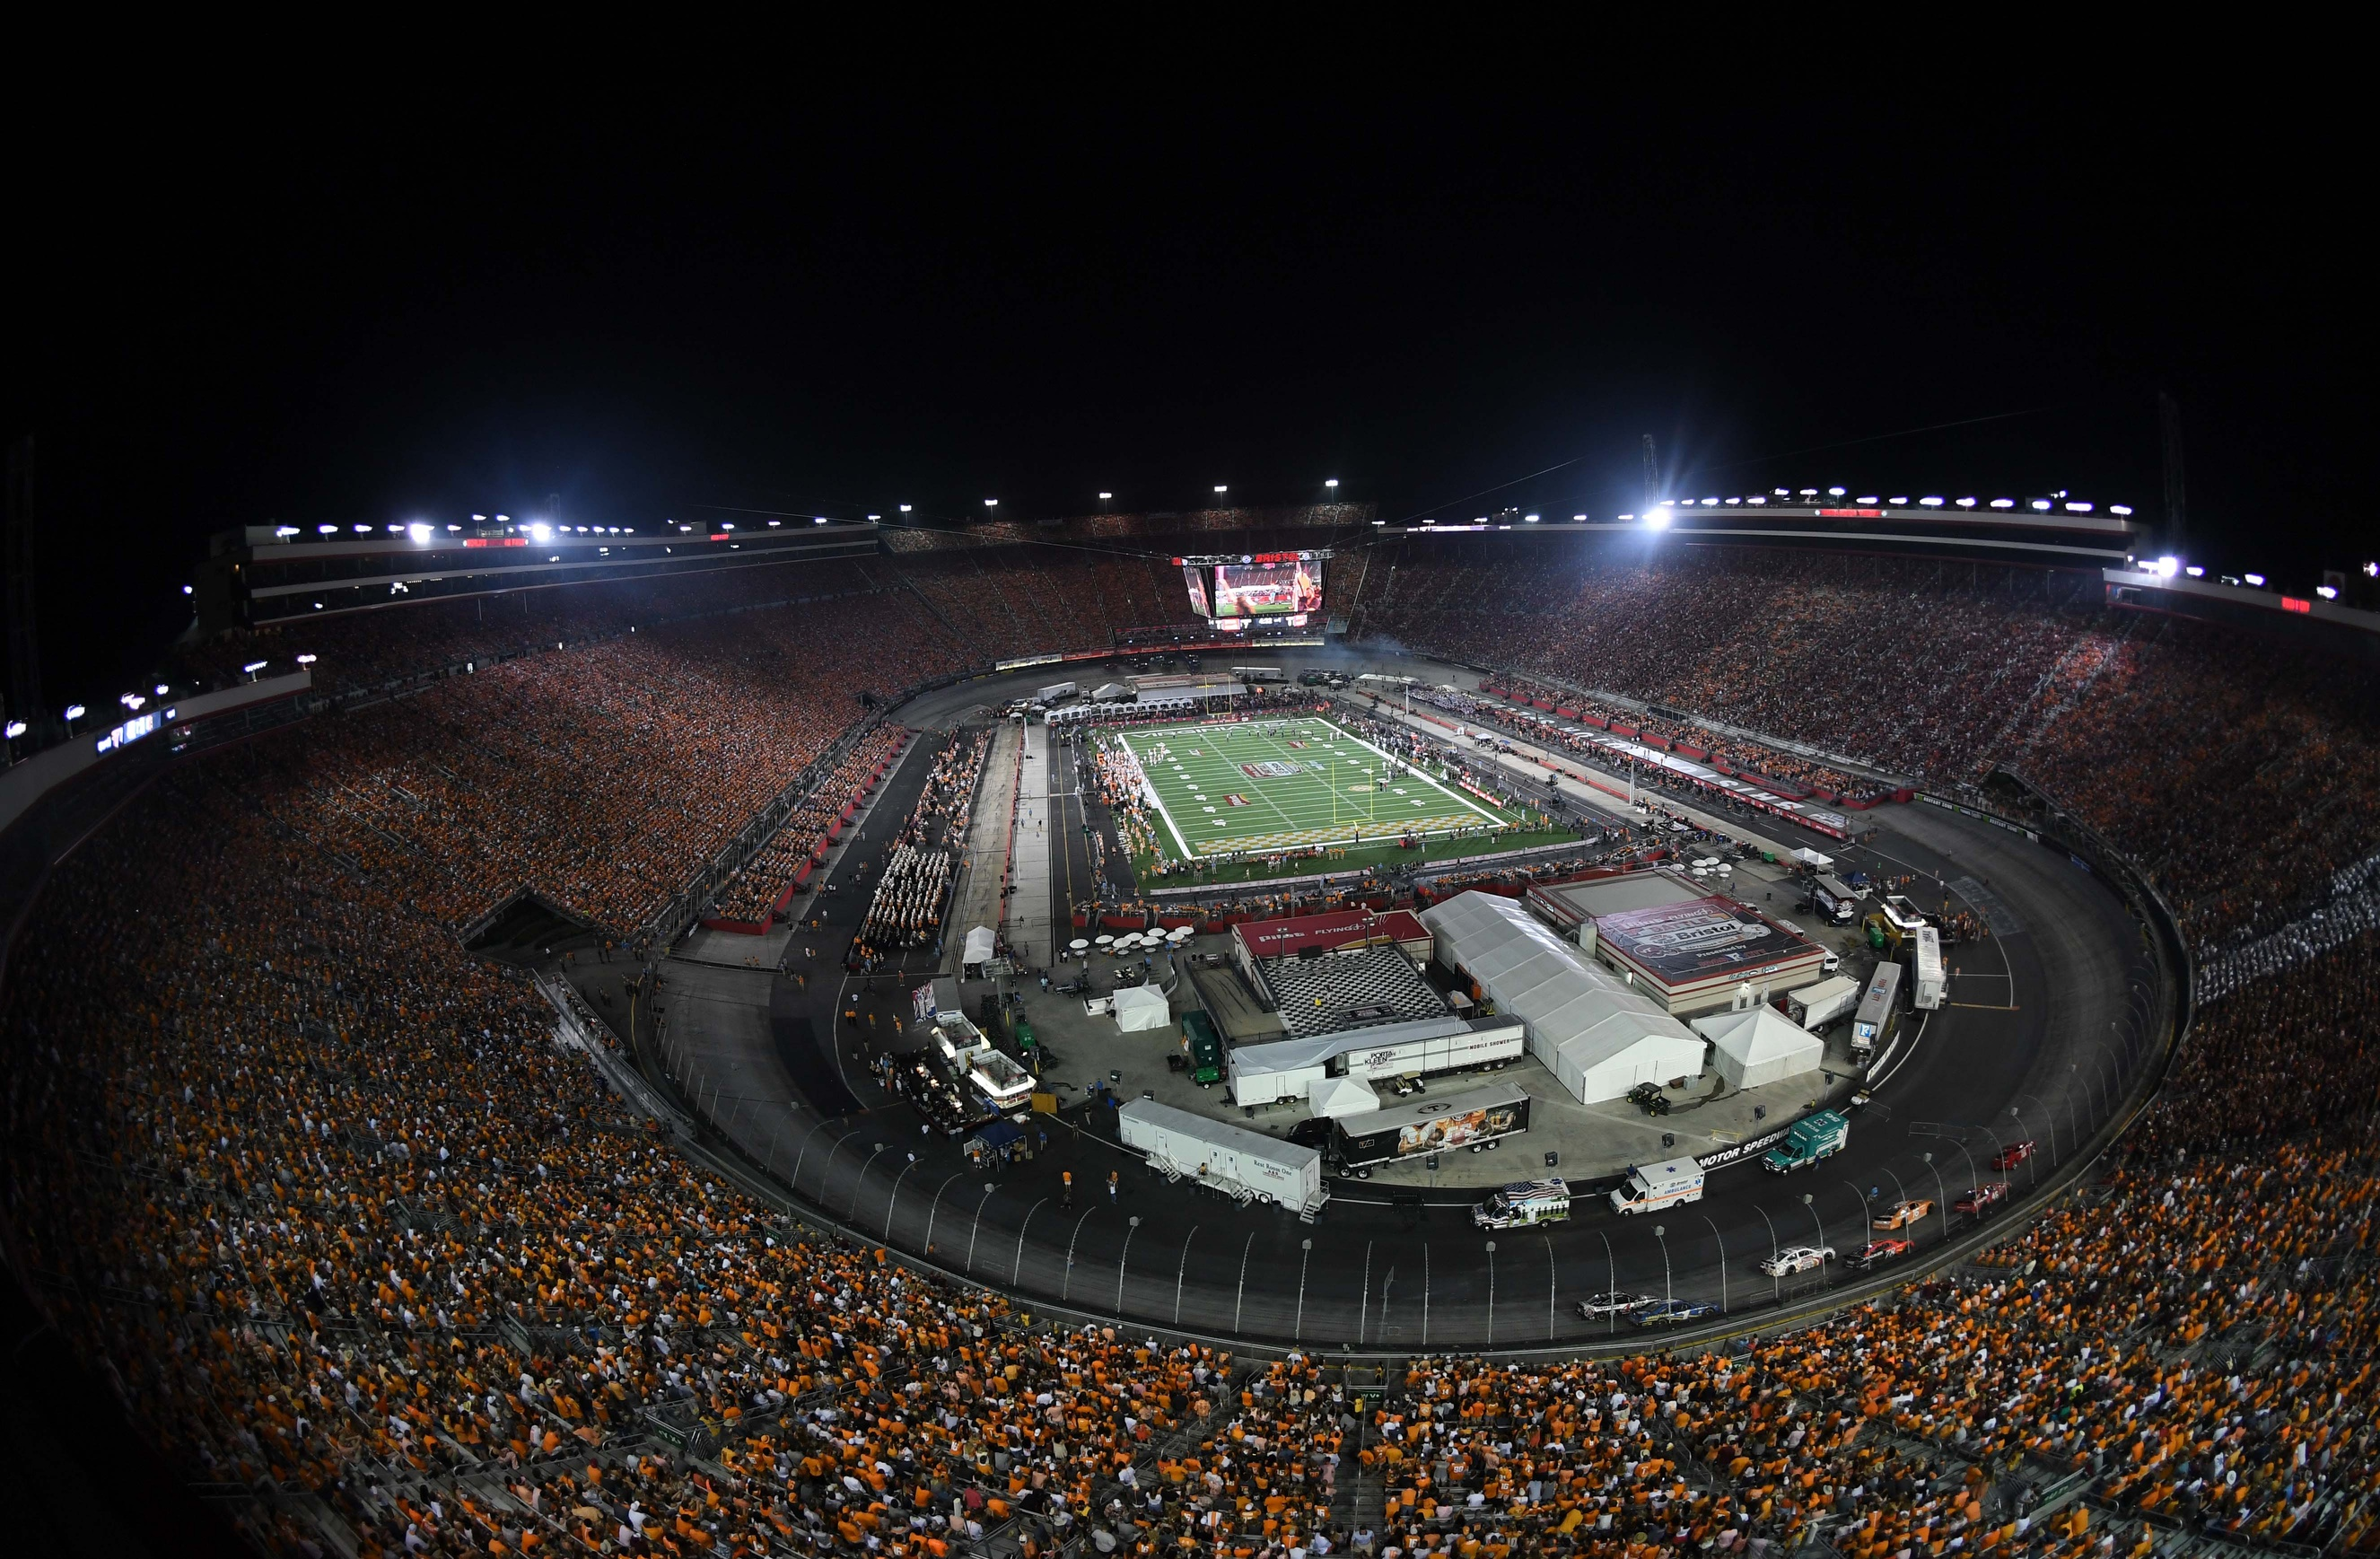 Sep 10, 2016; Bristol, TN, USA; General view of Bristol Motor Speedway during the first quarter of the Battle at Bristol college football game between the Virginia Tech Hokies and Tennessee Volunteers. Mandatory Credit: Christopher Hanewinckel-USA TODAY Sports